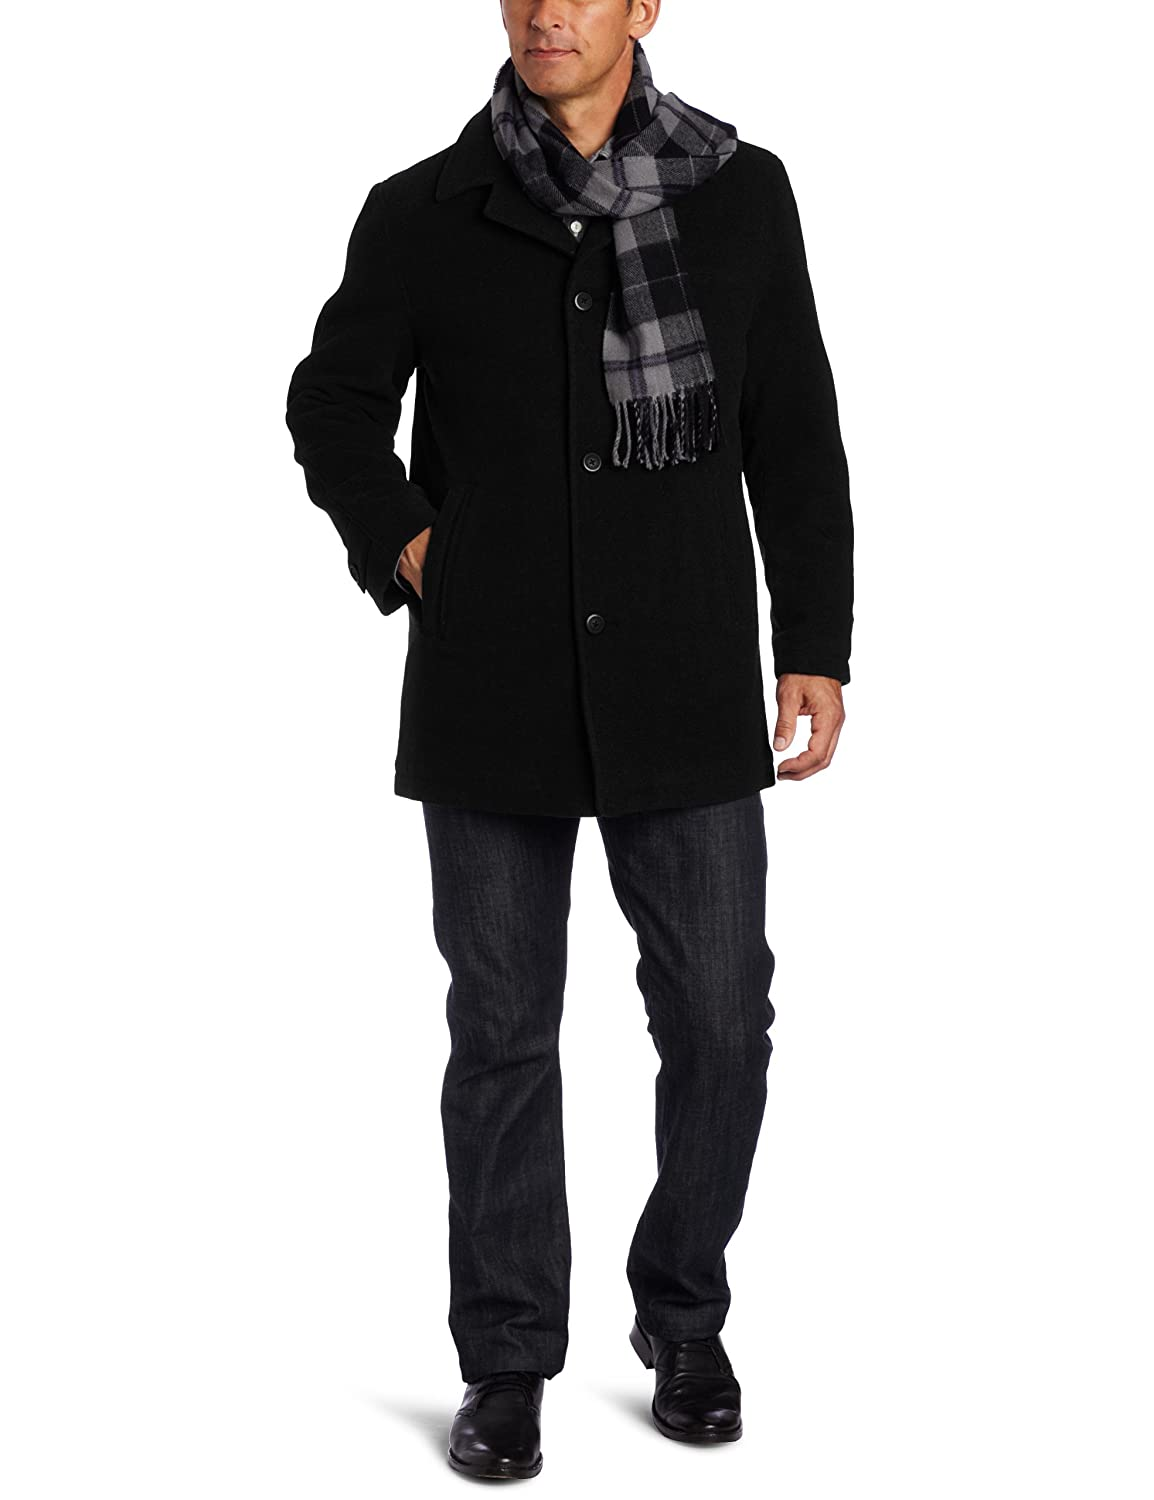 London Fog Men&#8217;s Barrington Car Coat, Black, Large $50